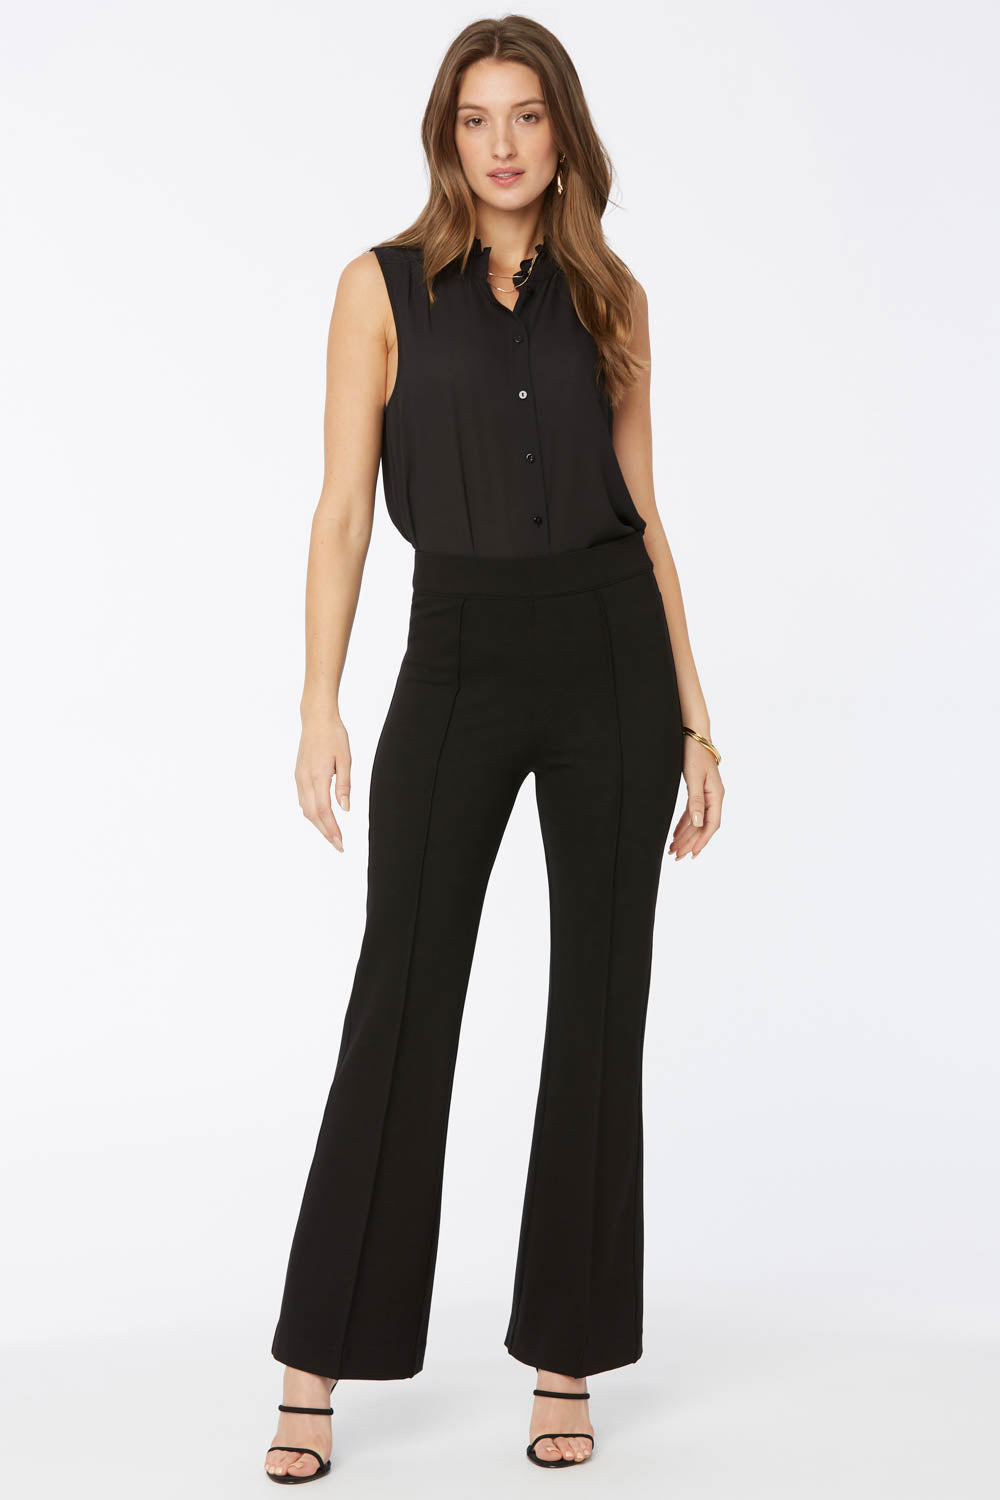 Pull-On Flared Pants - Jet Black